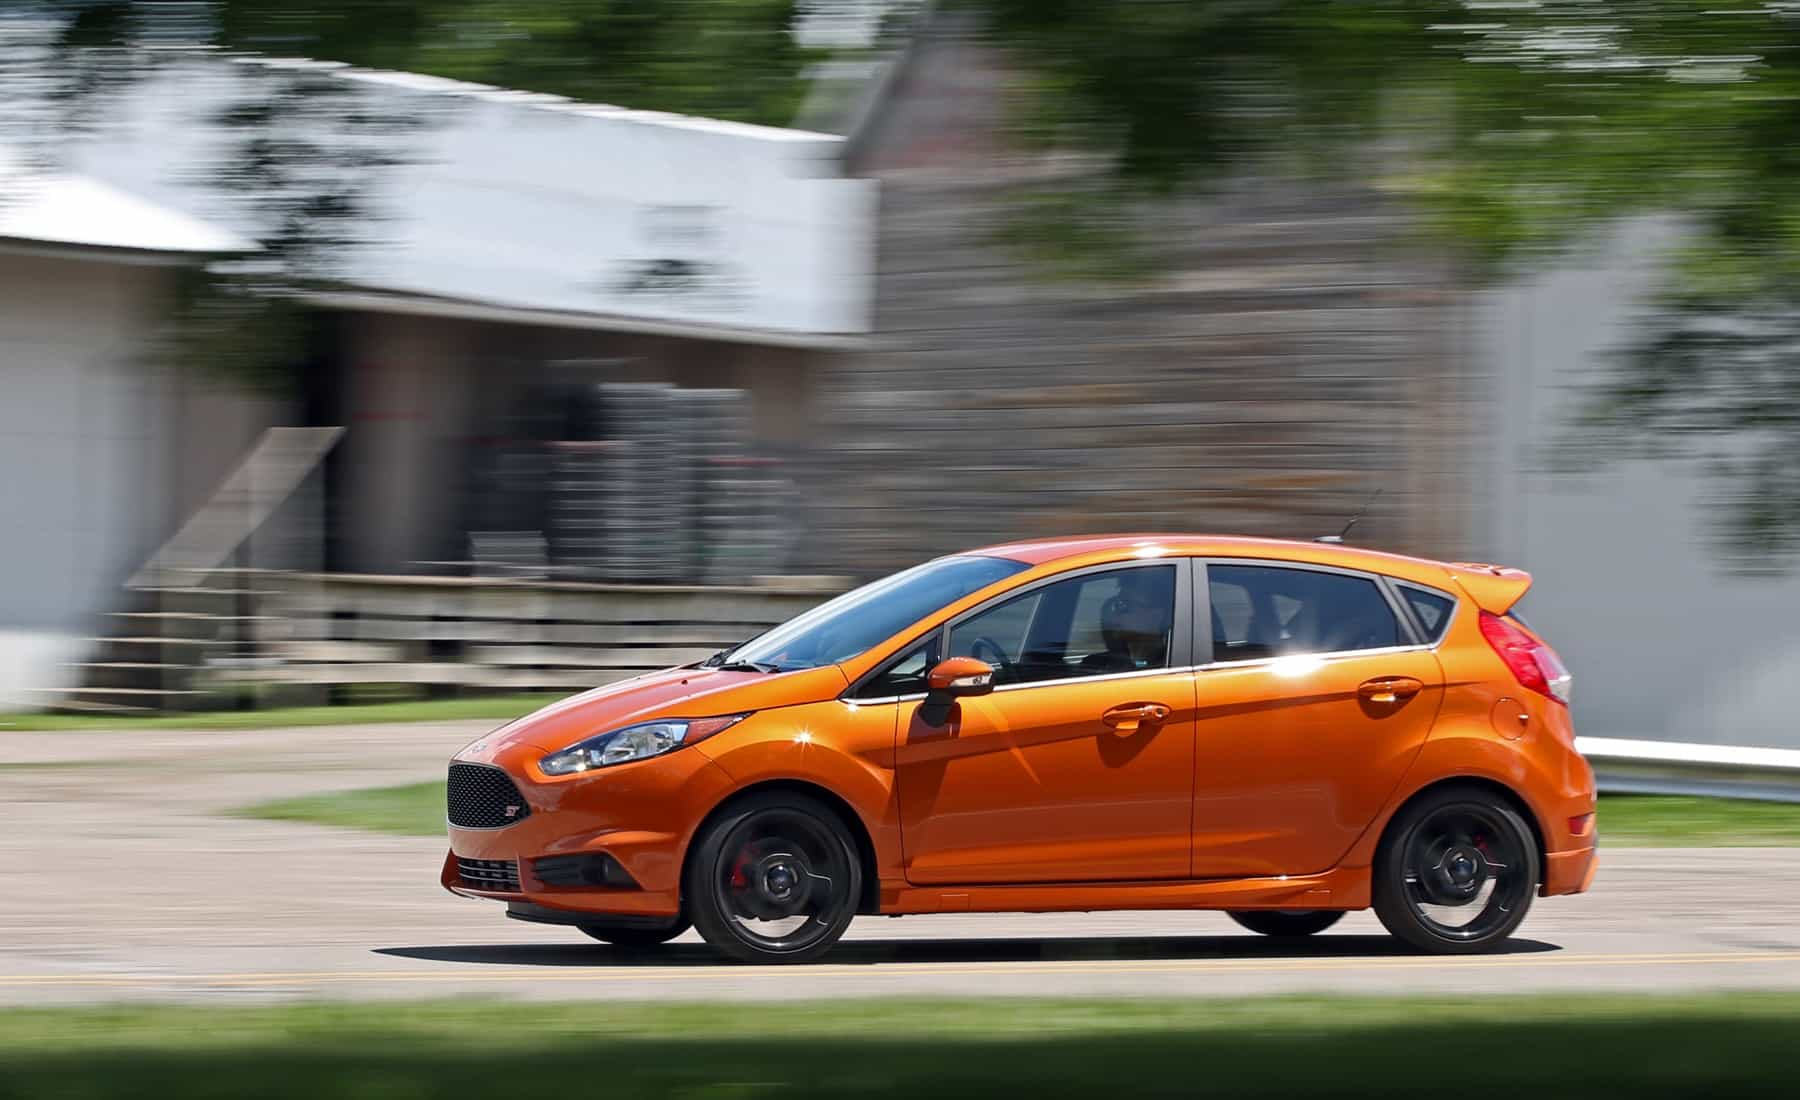 2017 Ford Fiesta ST Test Drive Orange Metallic (Photo 8 of 47)